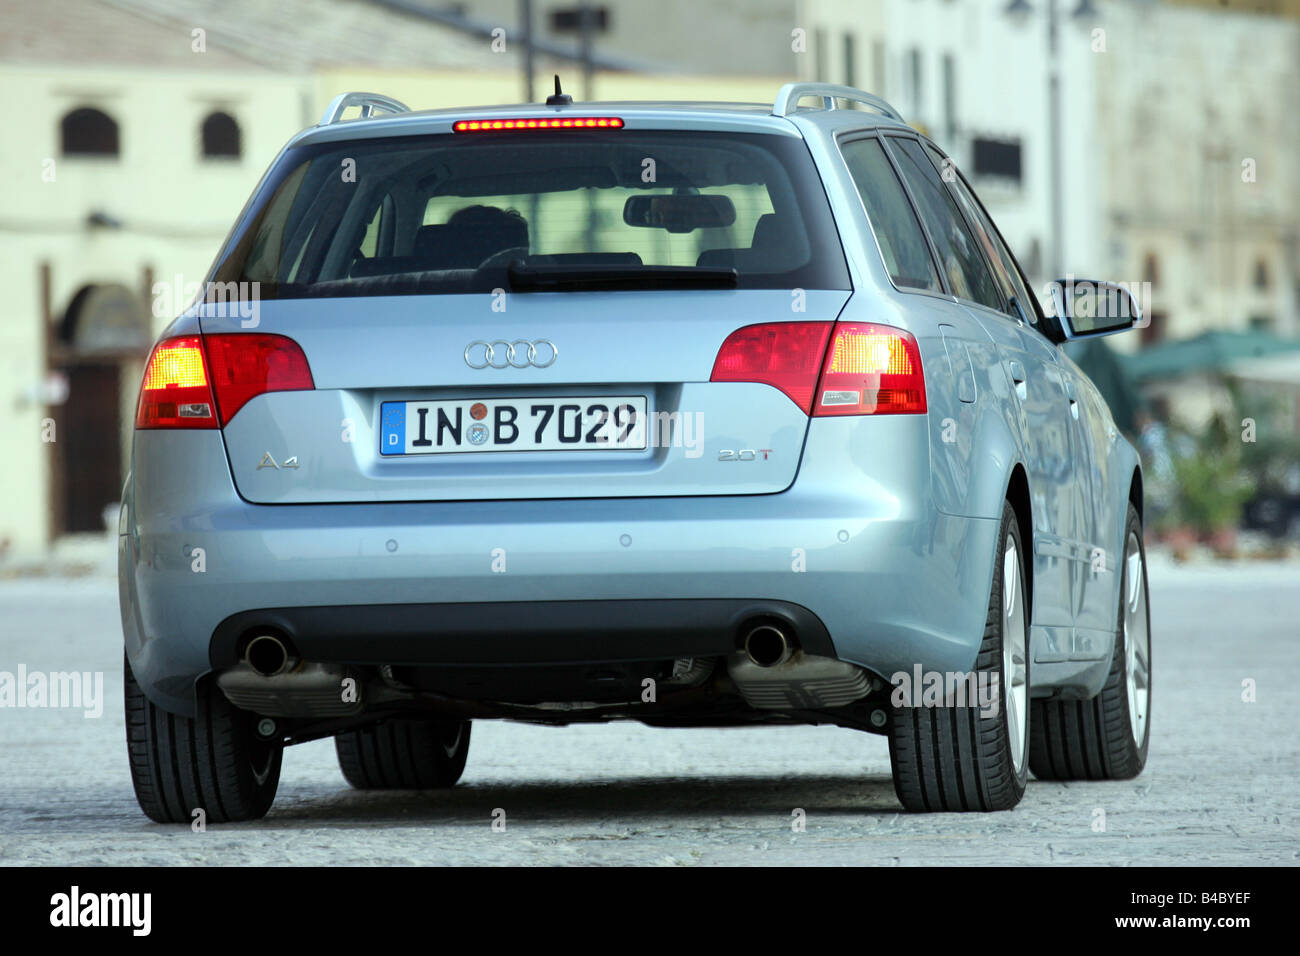 car audi a4 avant facelift model year 2004 silver blue stock photo 19932039 alamy. Black Bedroom Furniture Sets. Home Design Ideas